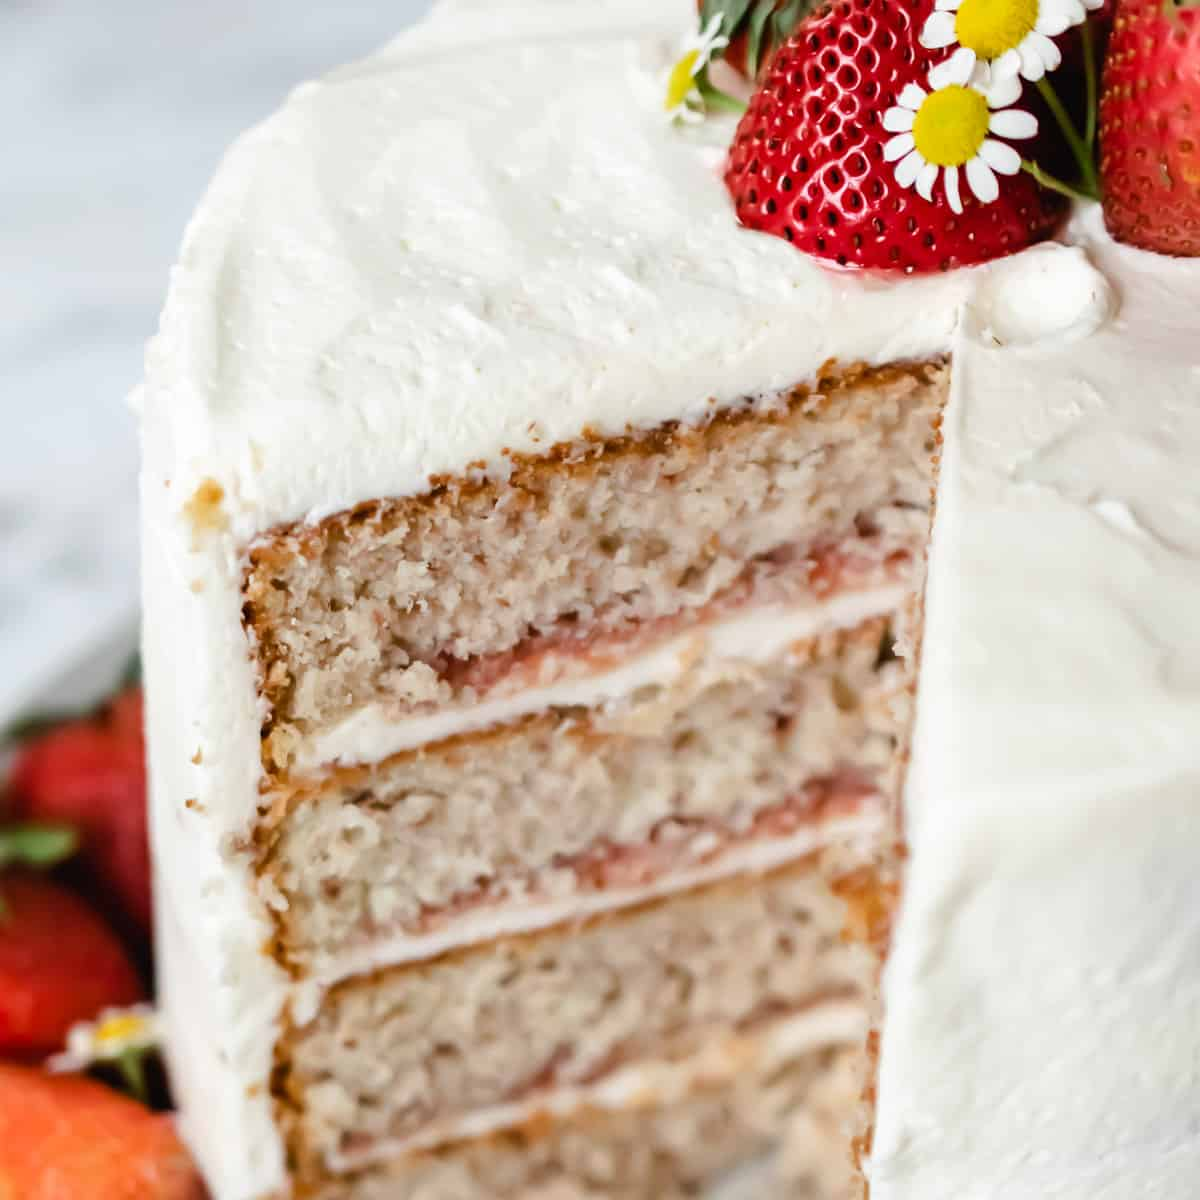 A slice taken out of a strawberry layer cake with strawberry filling.